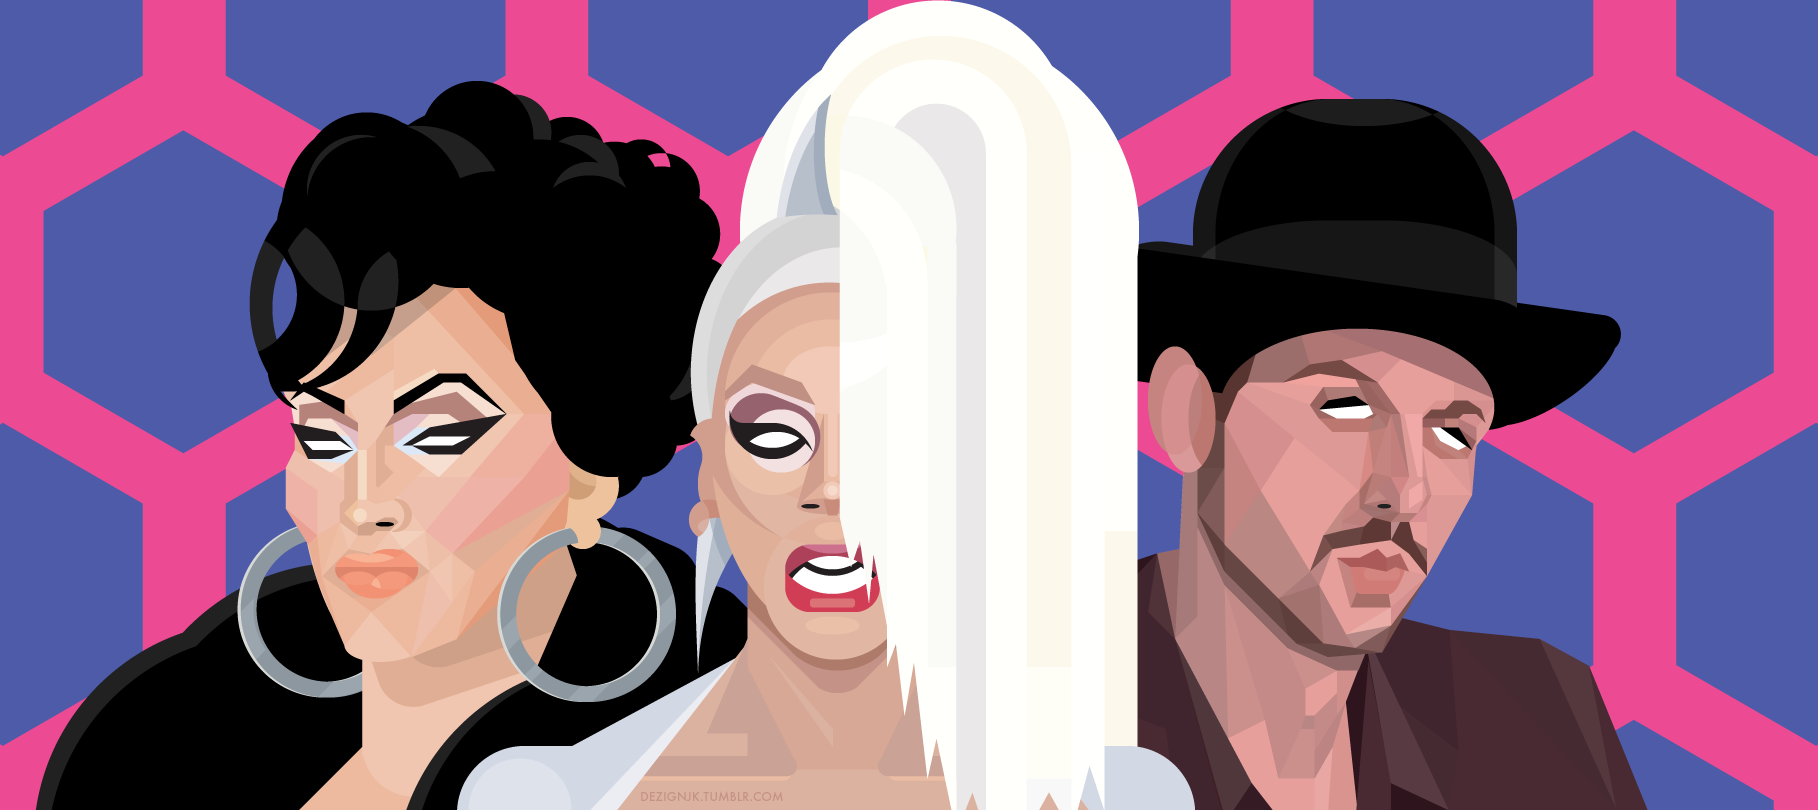 """""""Don't f*ck it up"""" -The judges of Drag Race: Michelle Visage, RuPaul, Santino Rice"""